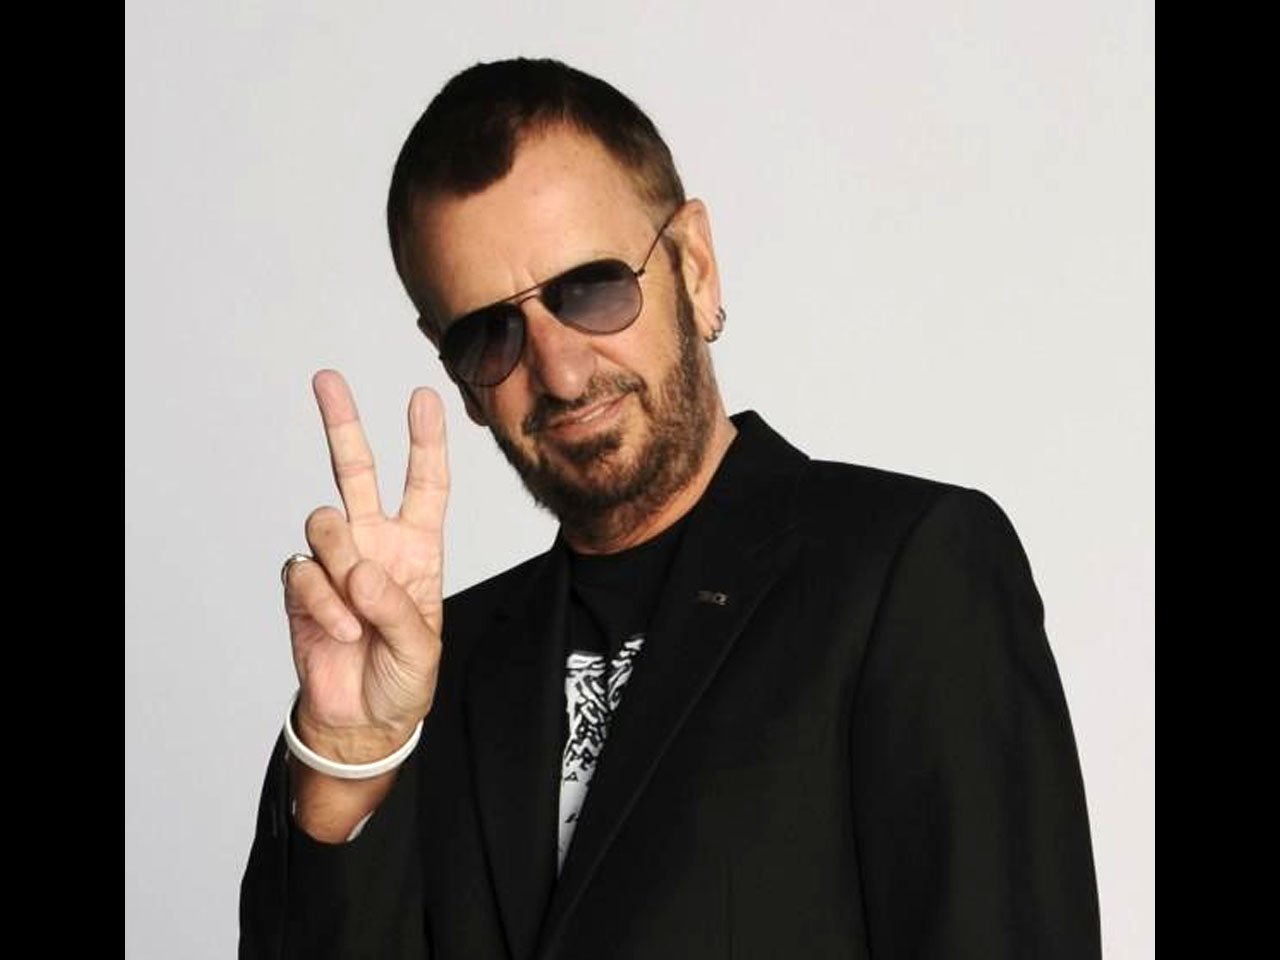 KHQ's Dylan Wohlenhaus found Beatles drummer Ringo Starr climbing a tree